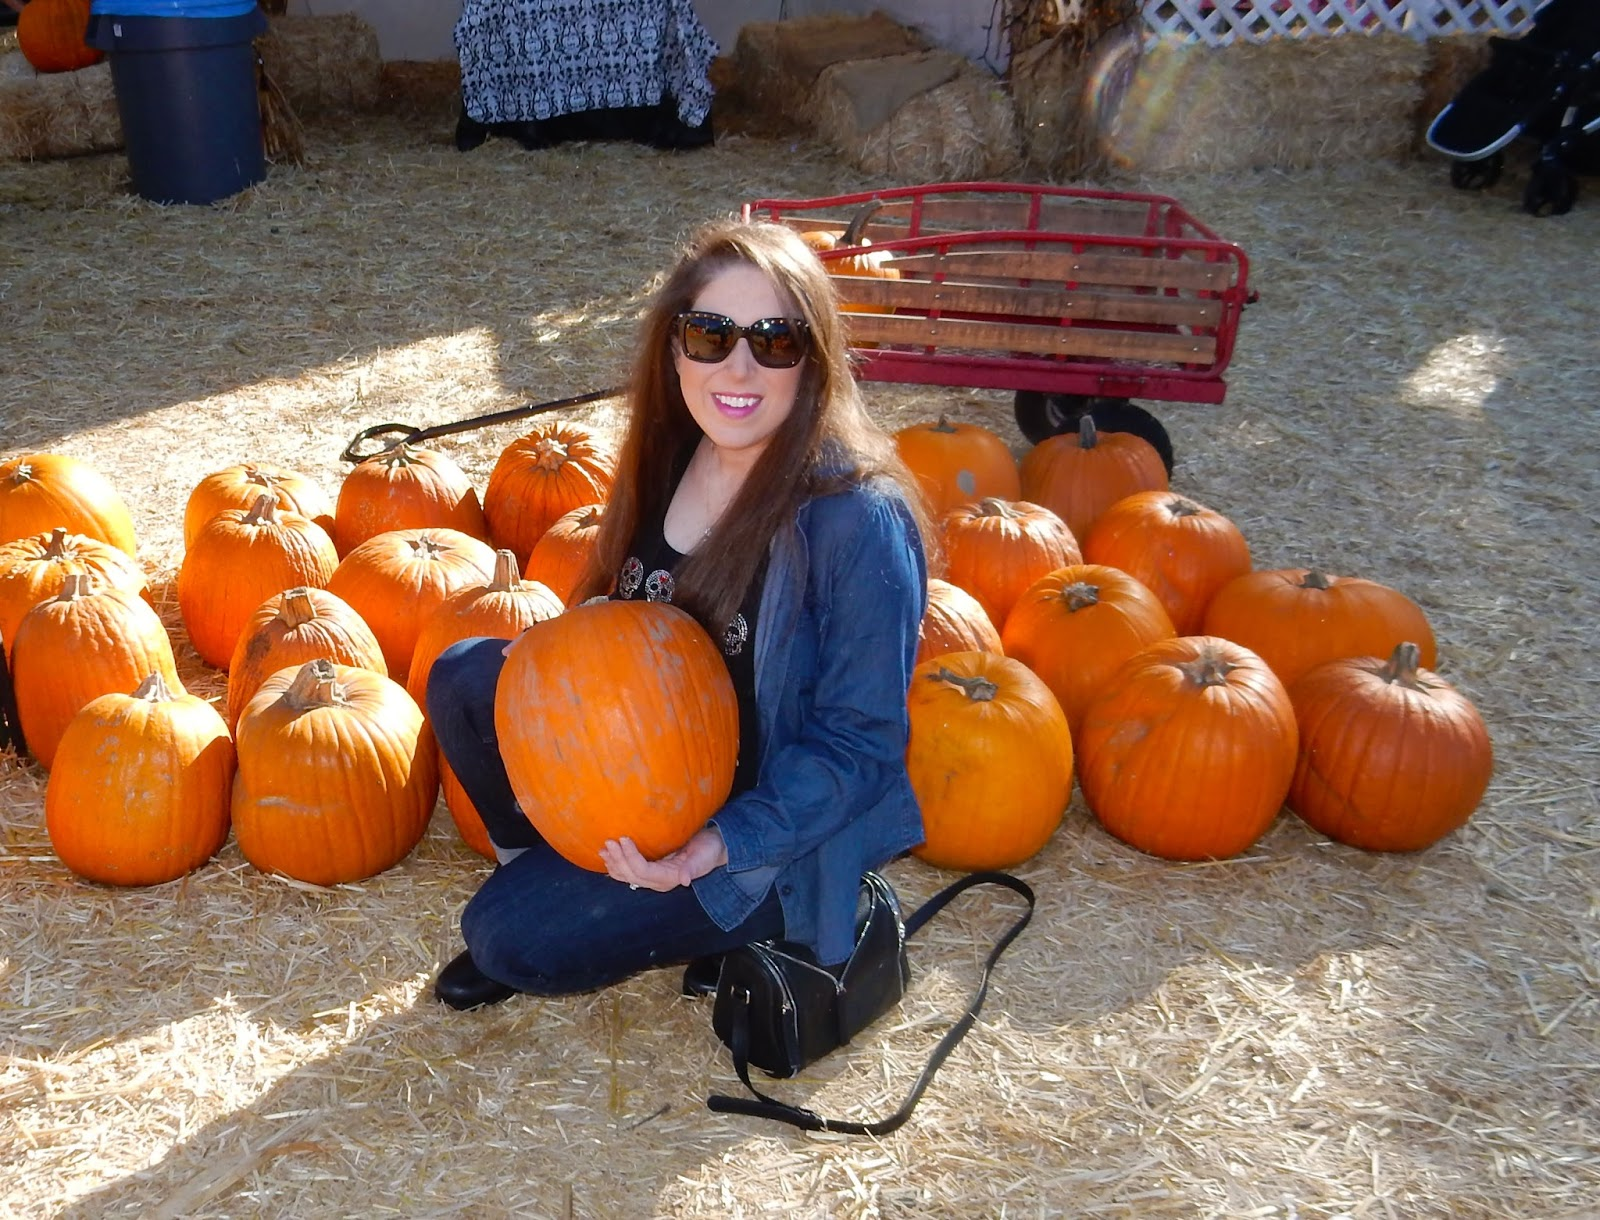 Marisa High Heeled Brenette with pumpkin at famous hollywood pumpkin patch